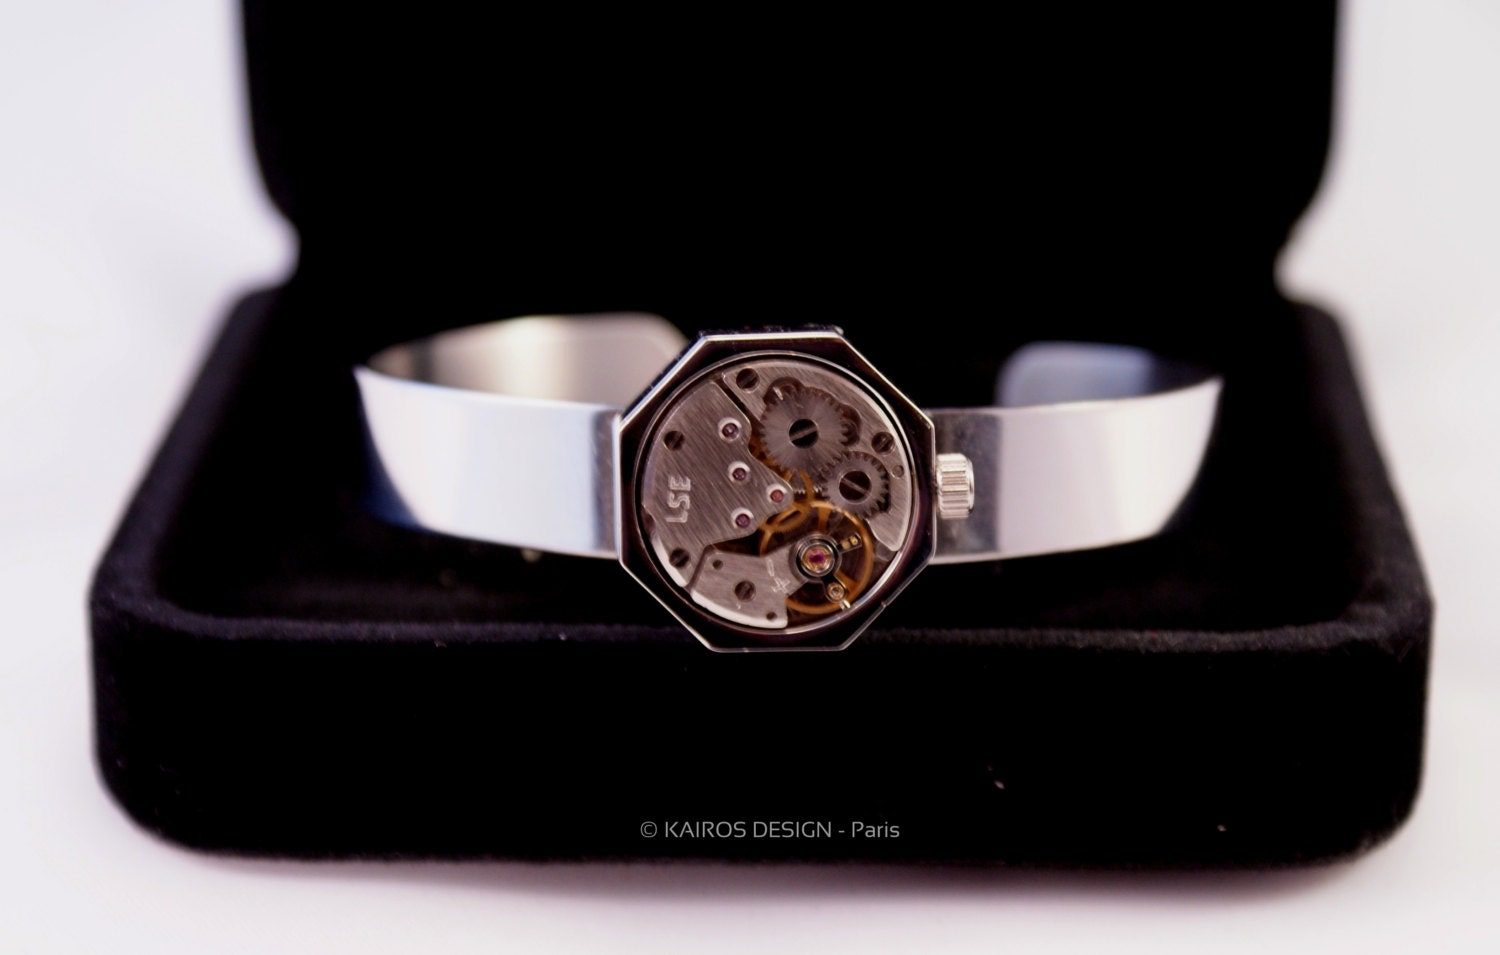 Bangle bracelet watch movement RUNNING for men - handmade in France with luxury watch and delivered in gift box & authenticity card steampunk buy now online